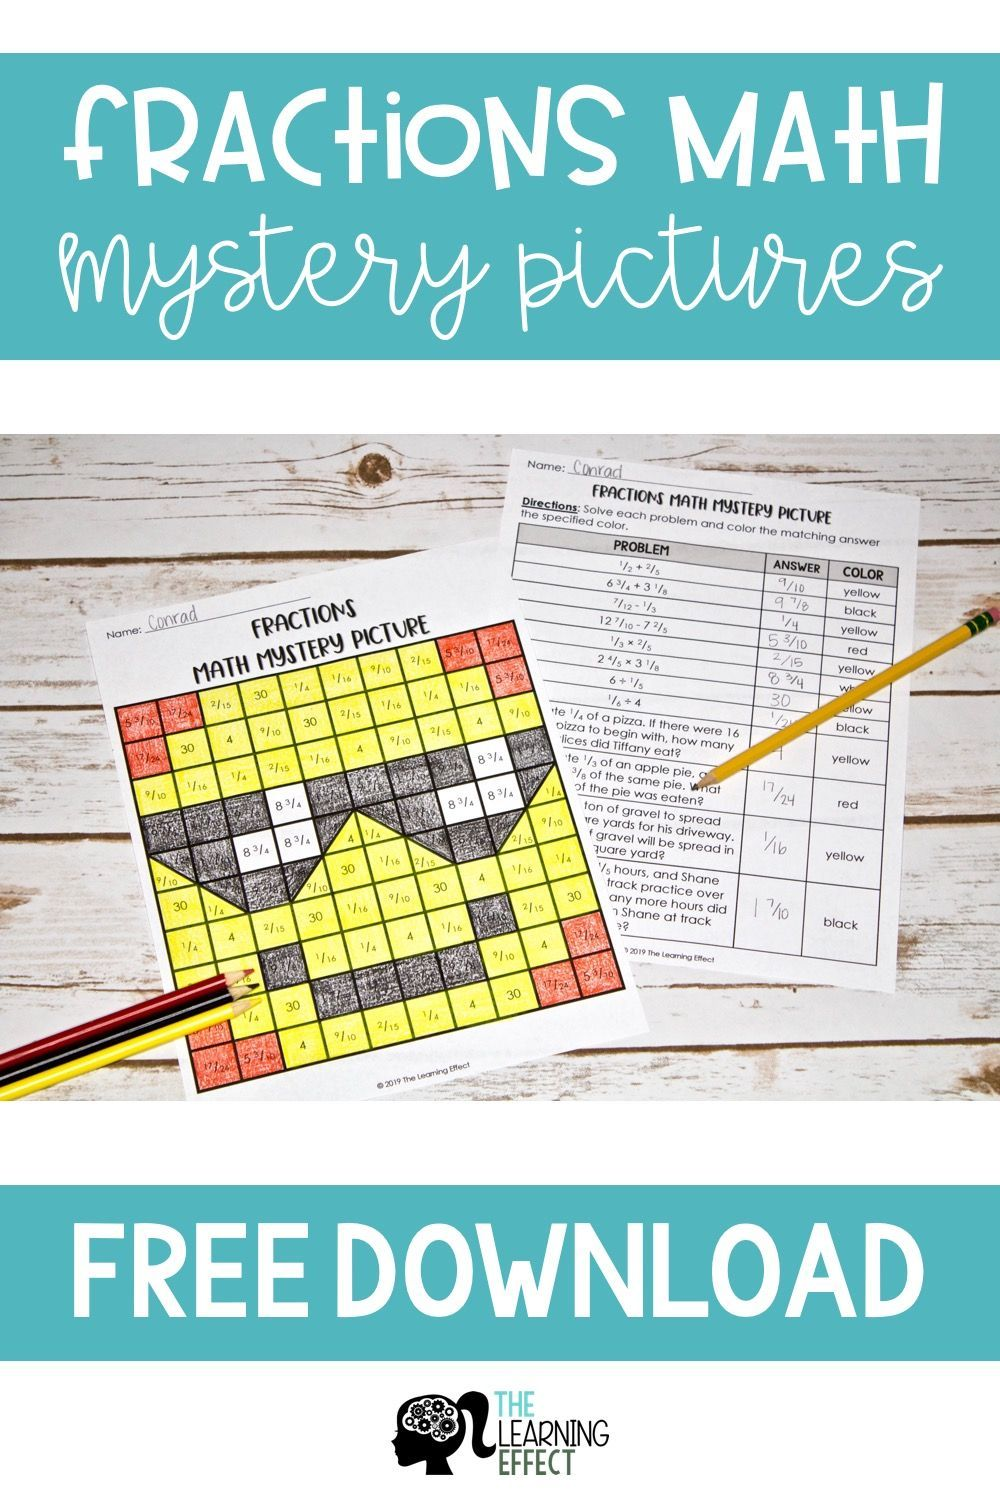 hight resolution of FREE Fractions Math Mystery Picture - Practice adding